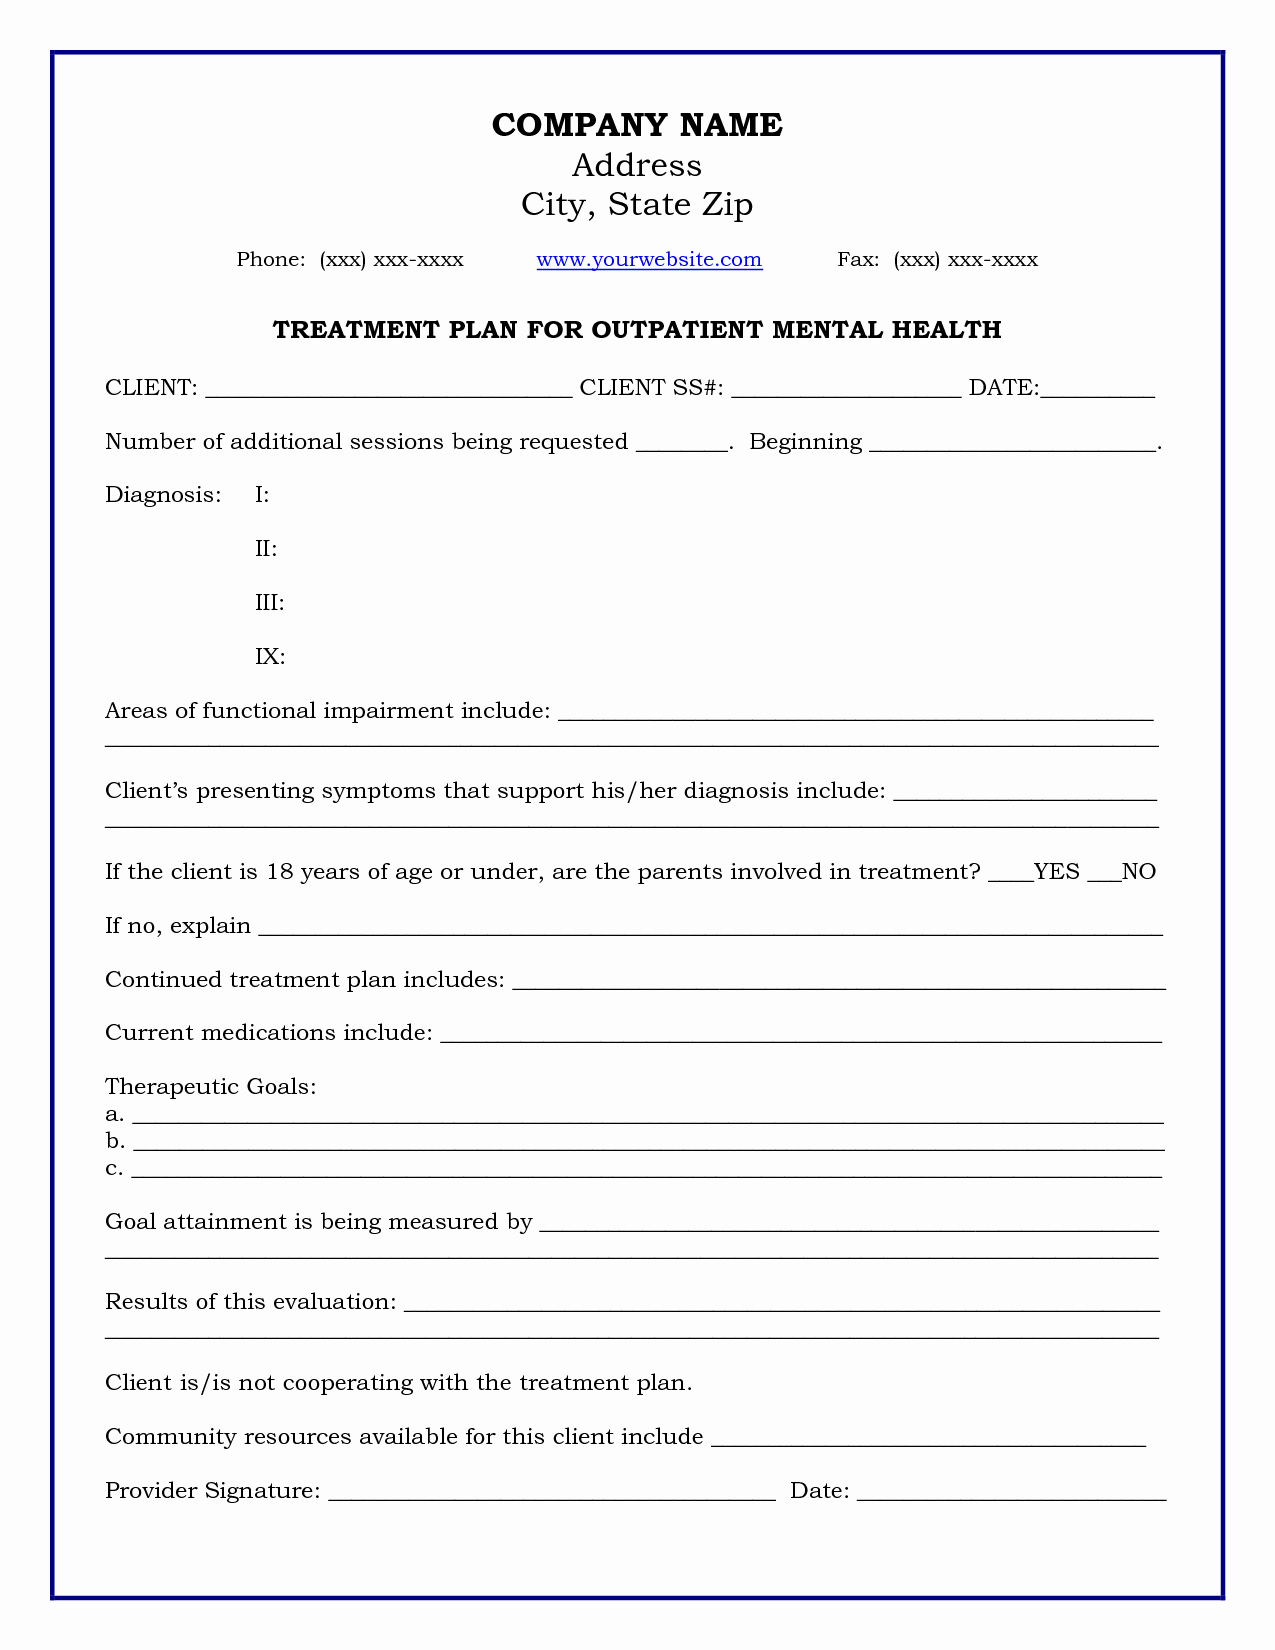 Mental Health Treatment Plan Template New Treatment Plan Template